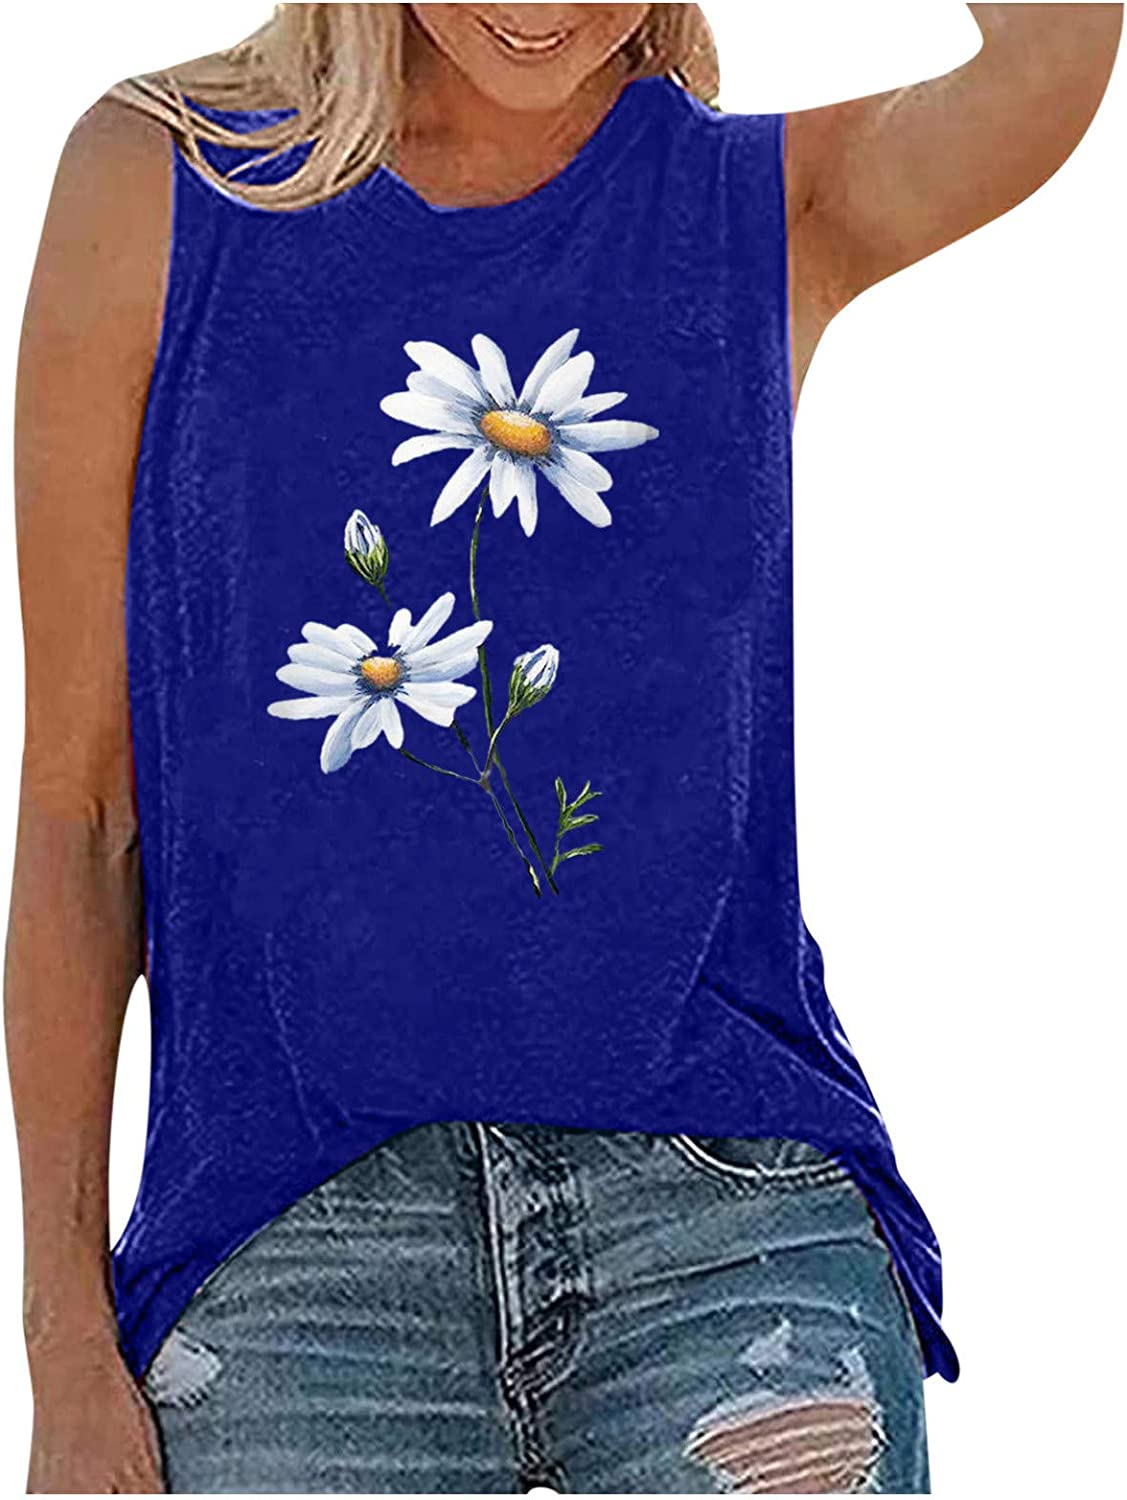 Gerichy Tank Tops for Women, Womens Casual Summer Sleeveless Loose Fit Plus Size Blouses Tees Tank Shirts Tunics Vest